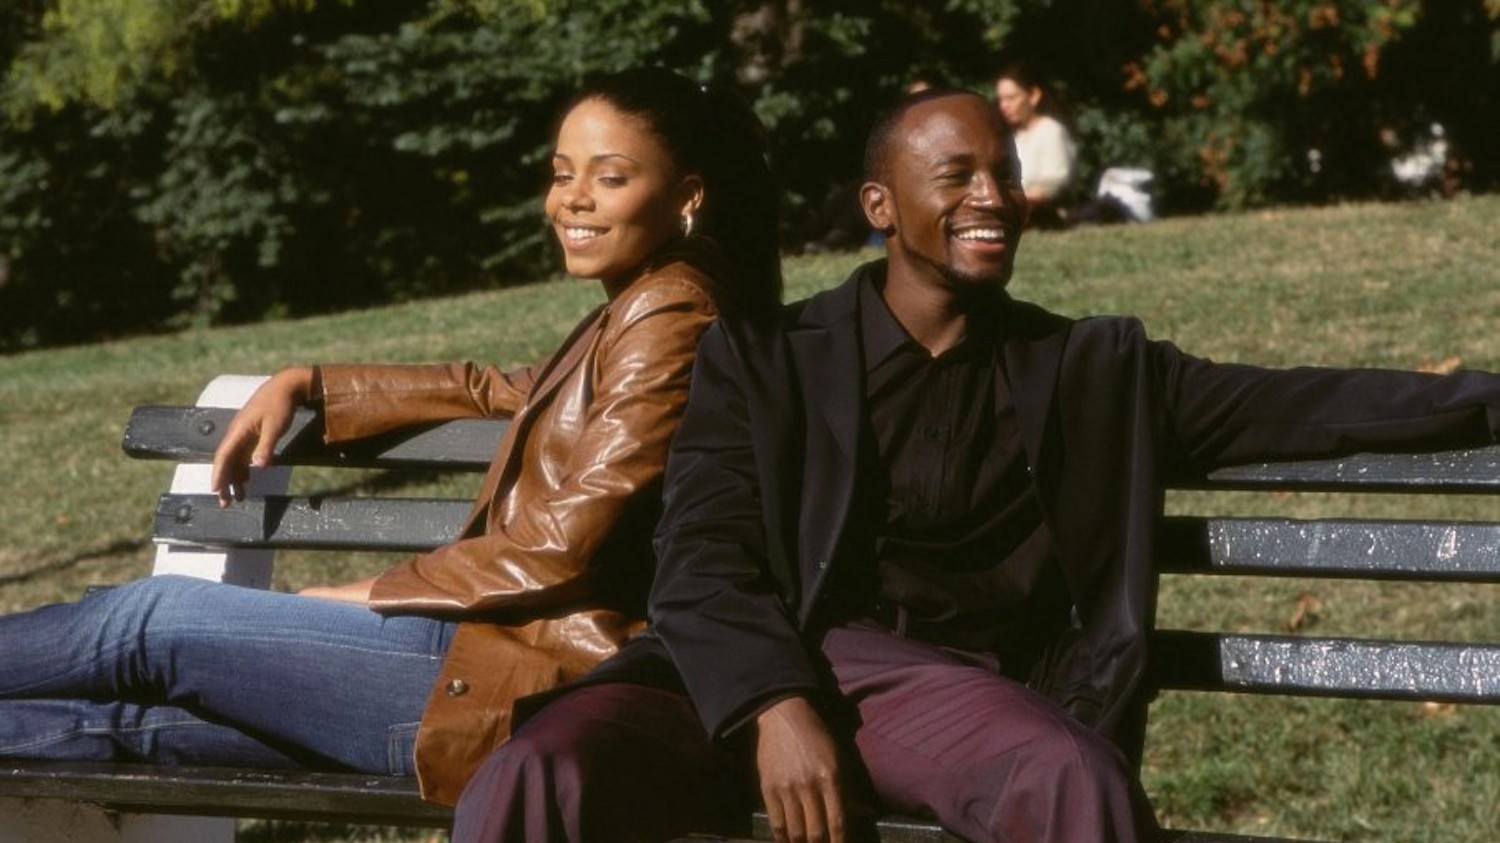 How 'Brown Sugar' Destroyed the Taboo of Black Love in Cinema